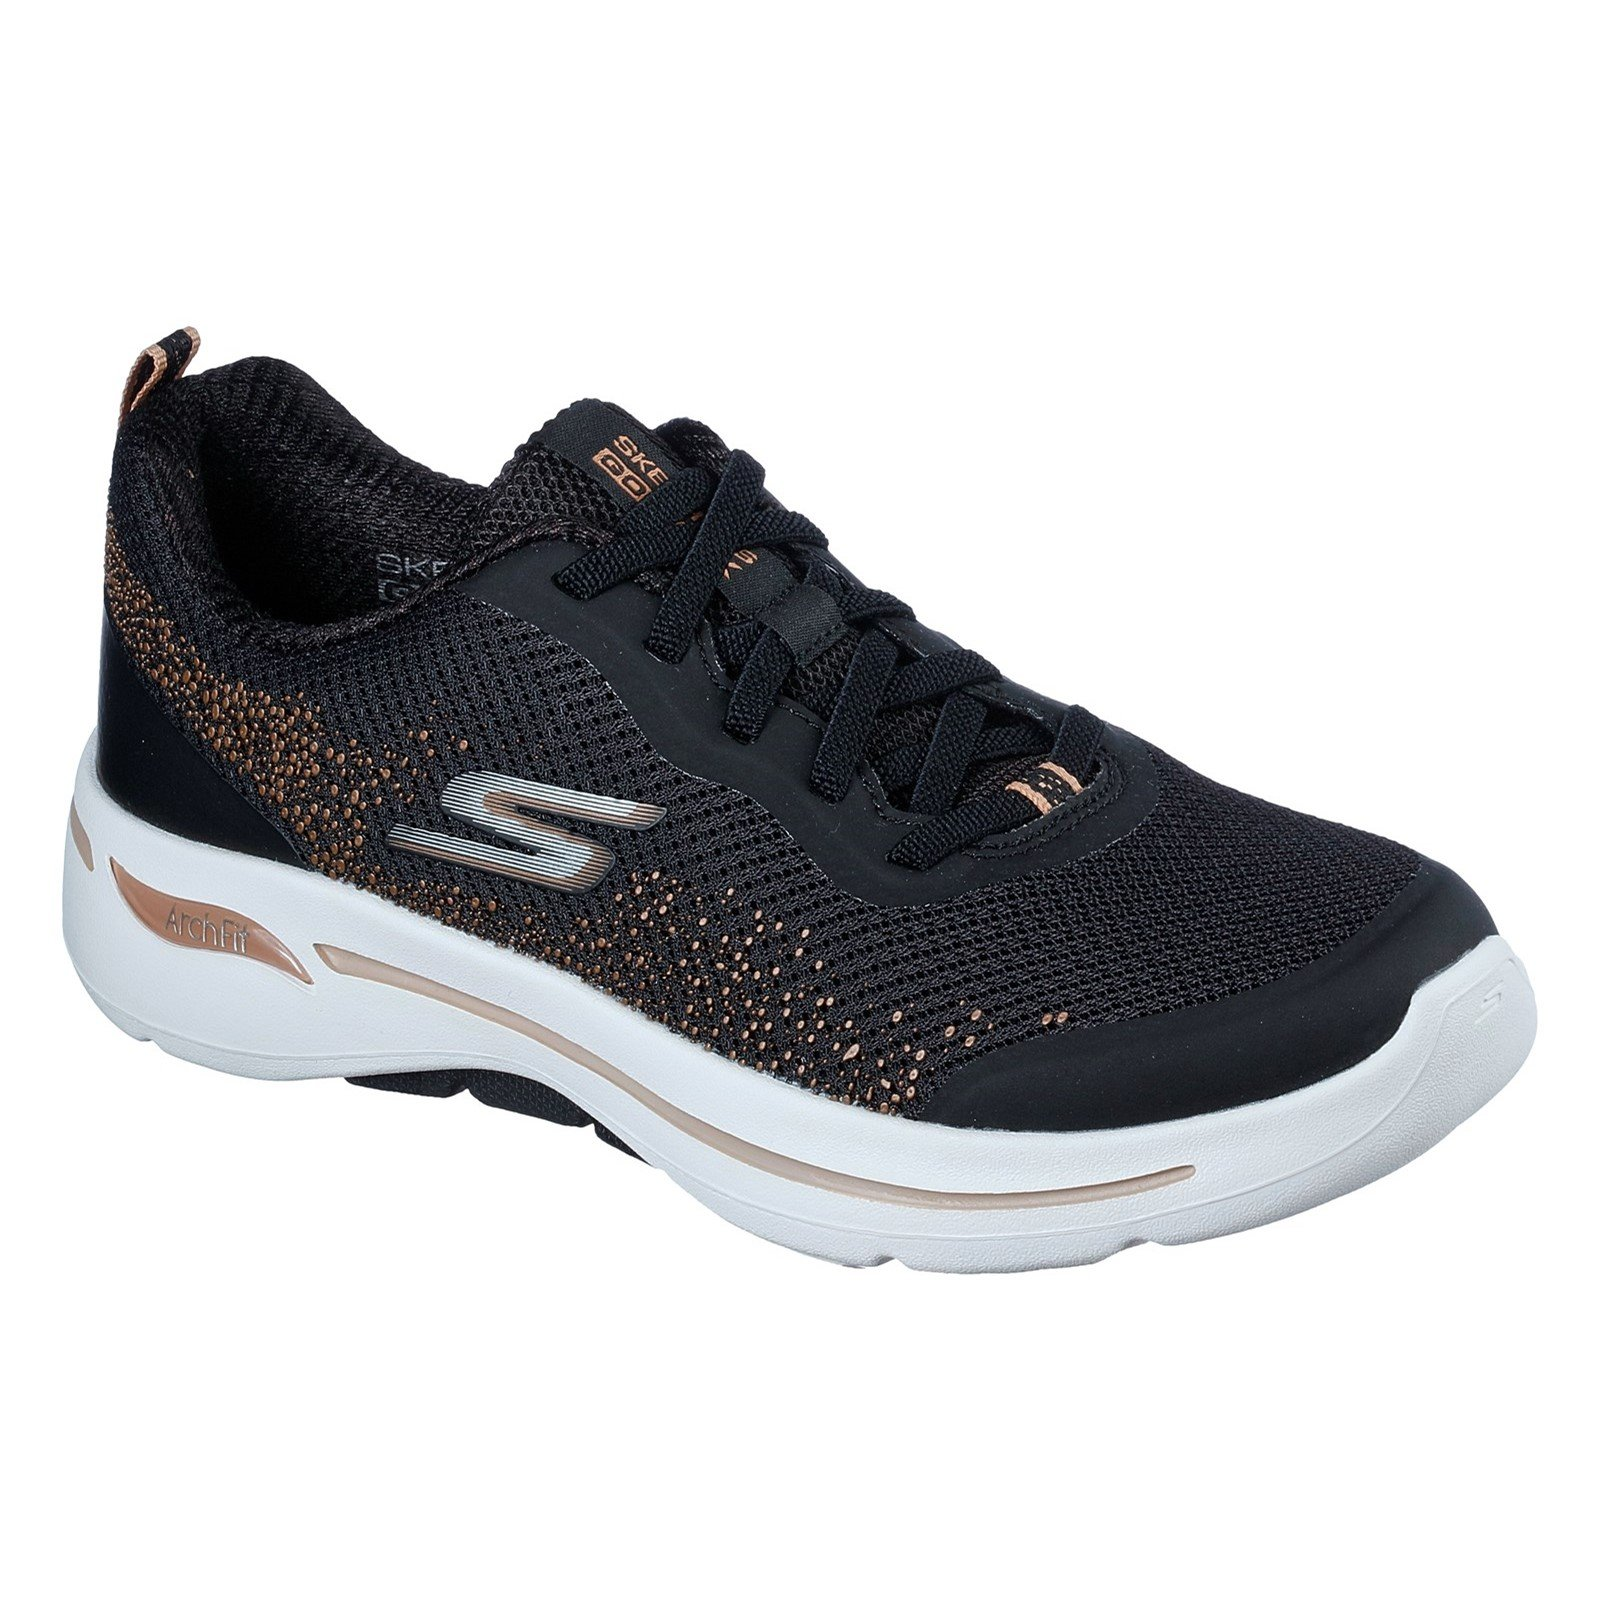 Skechers Women's Go Walk Arch Fit Flying Stars Trainer Various Colours 32841 - Black/Gold 3